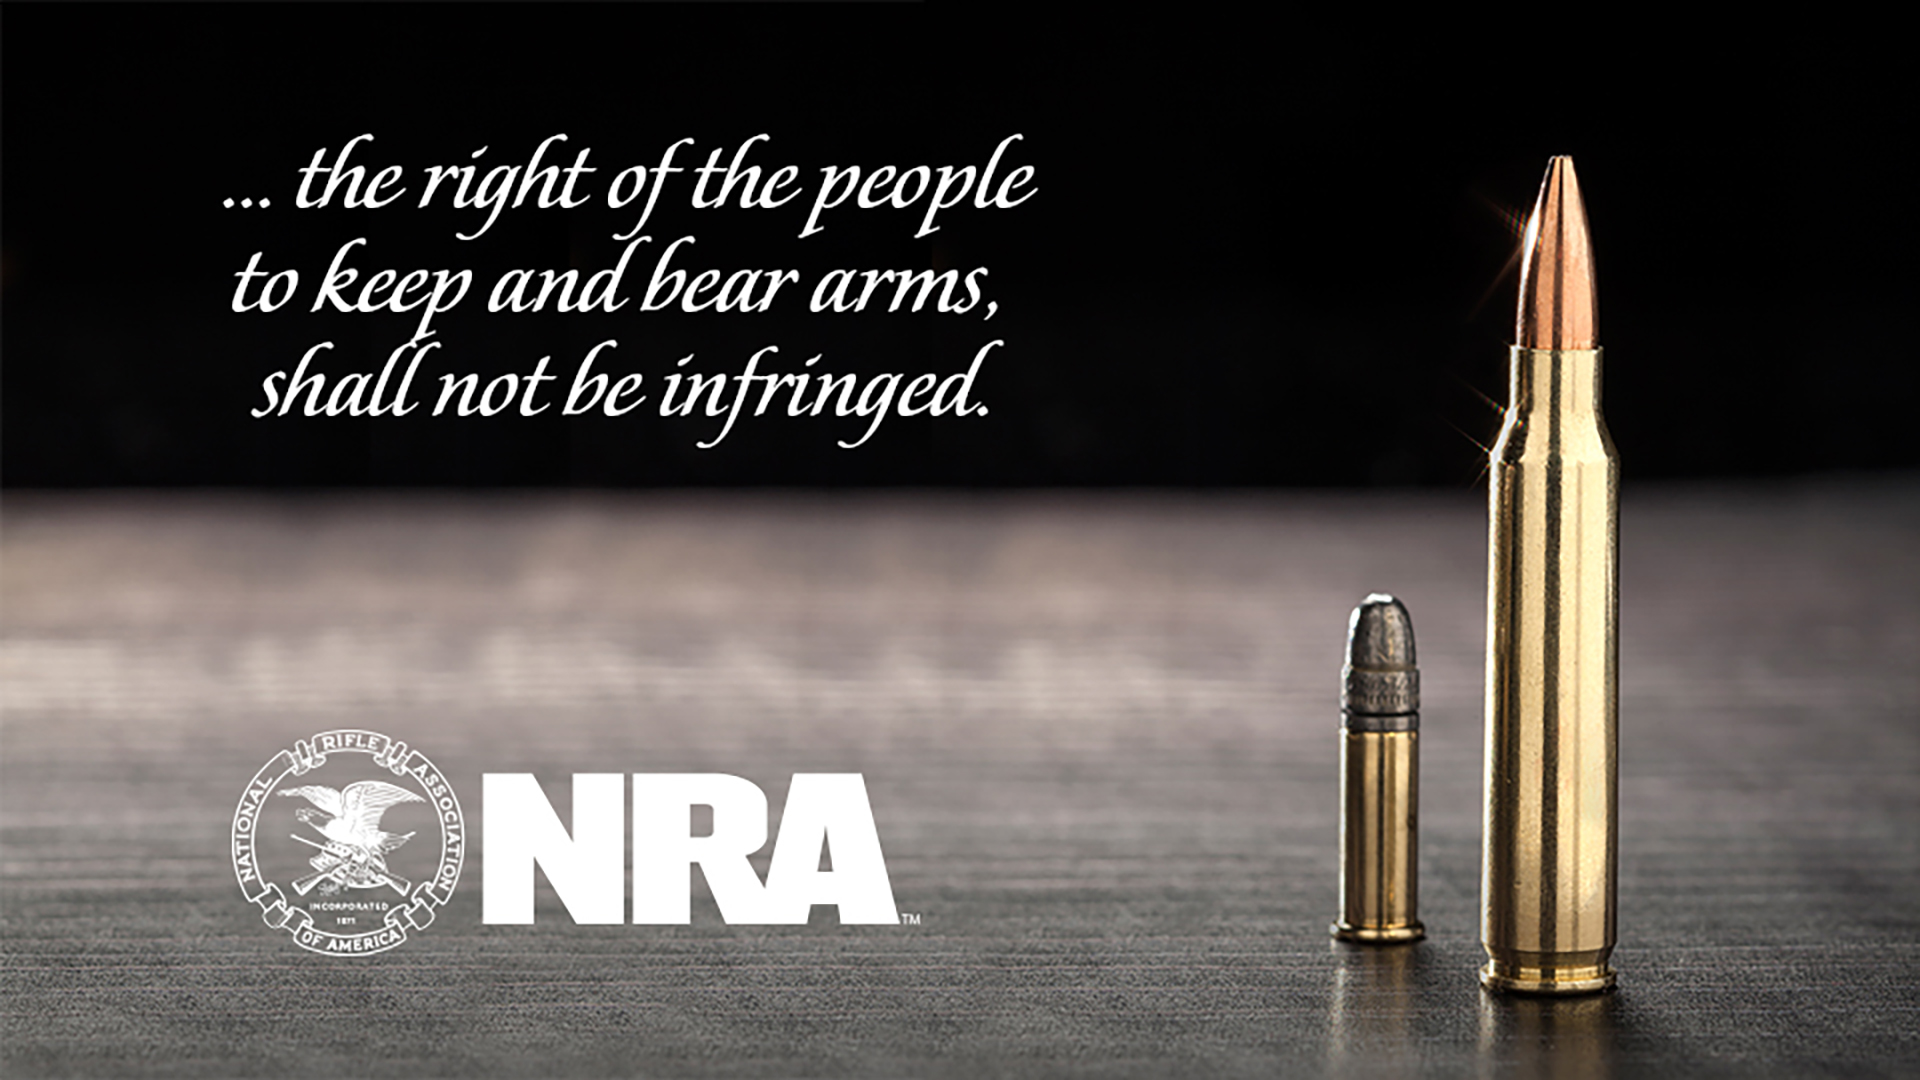 nra publications | nra wallpaper